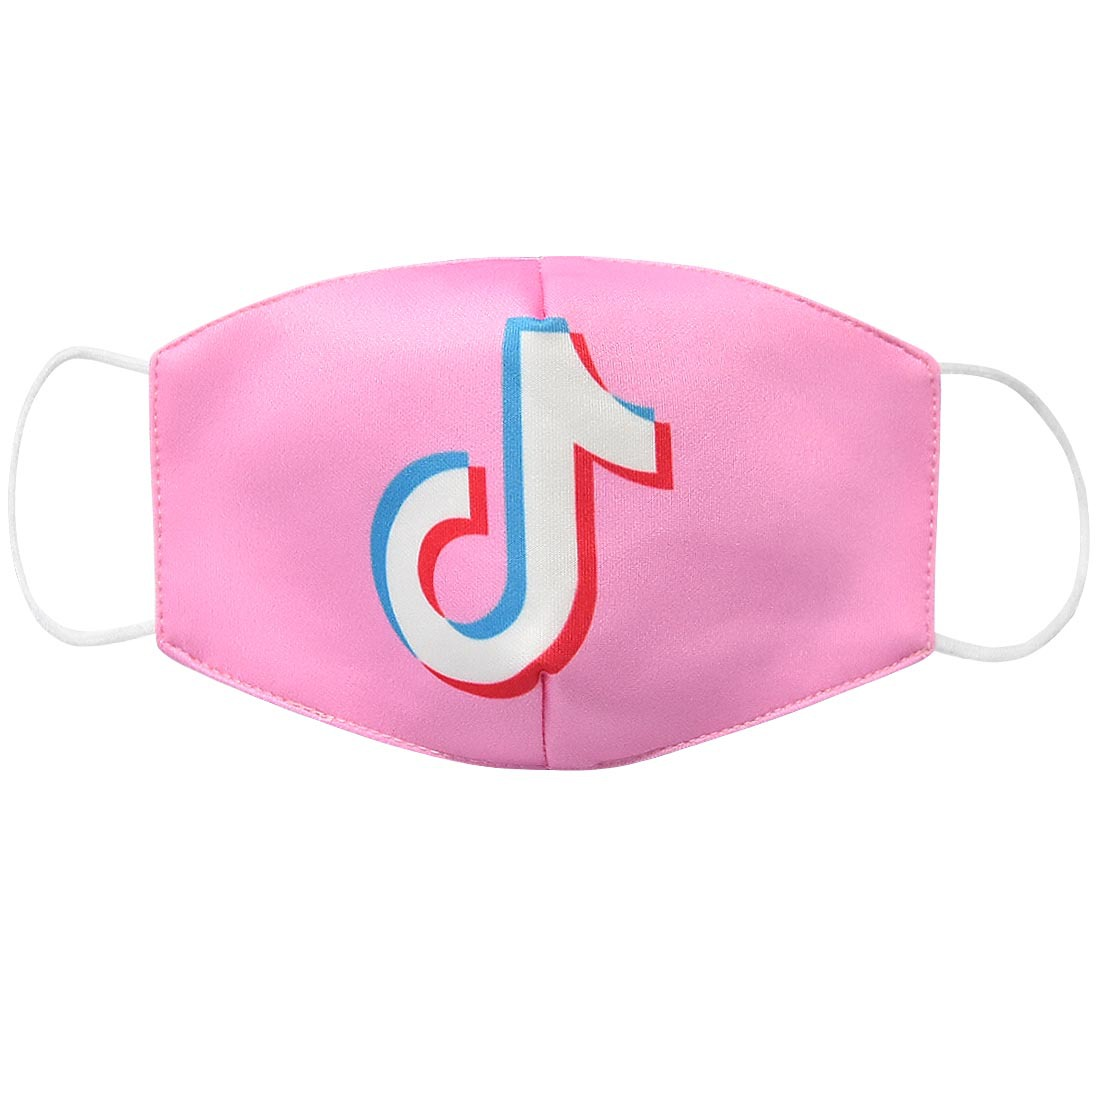 Cartoon Printed Children Printed Mask With Ice Silk Cotton Mask For Kids 3